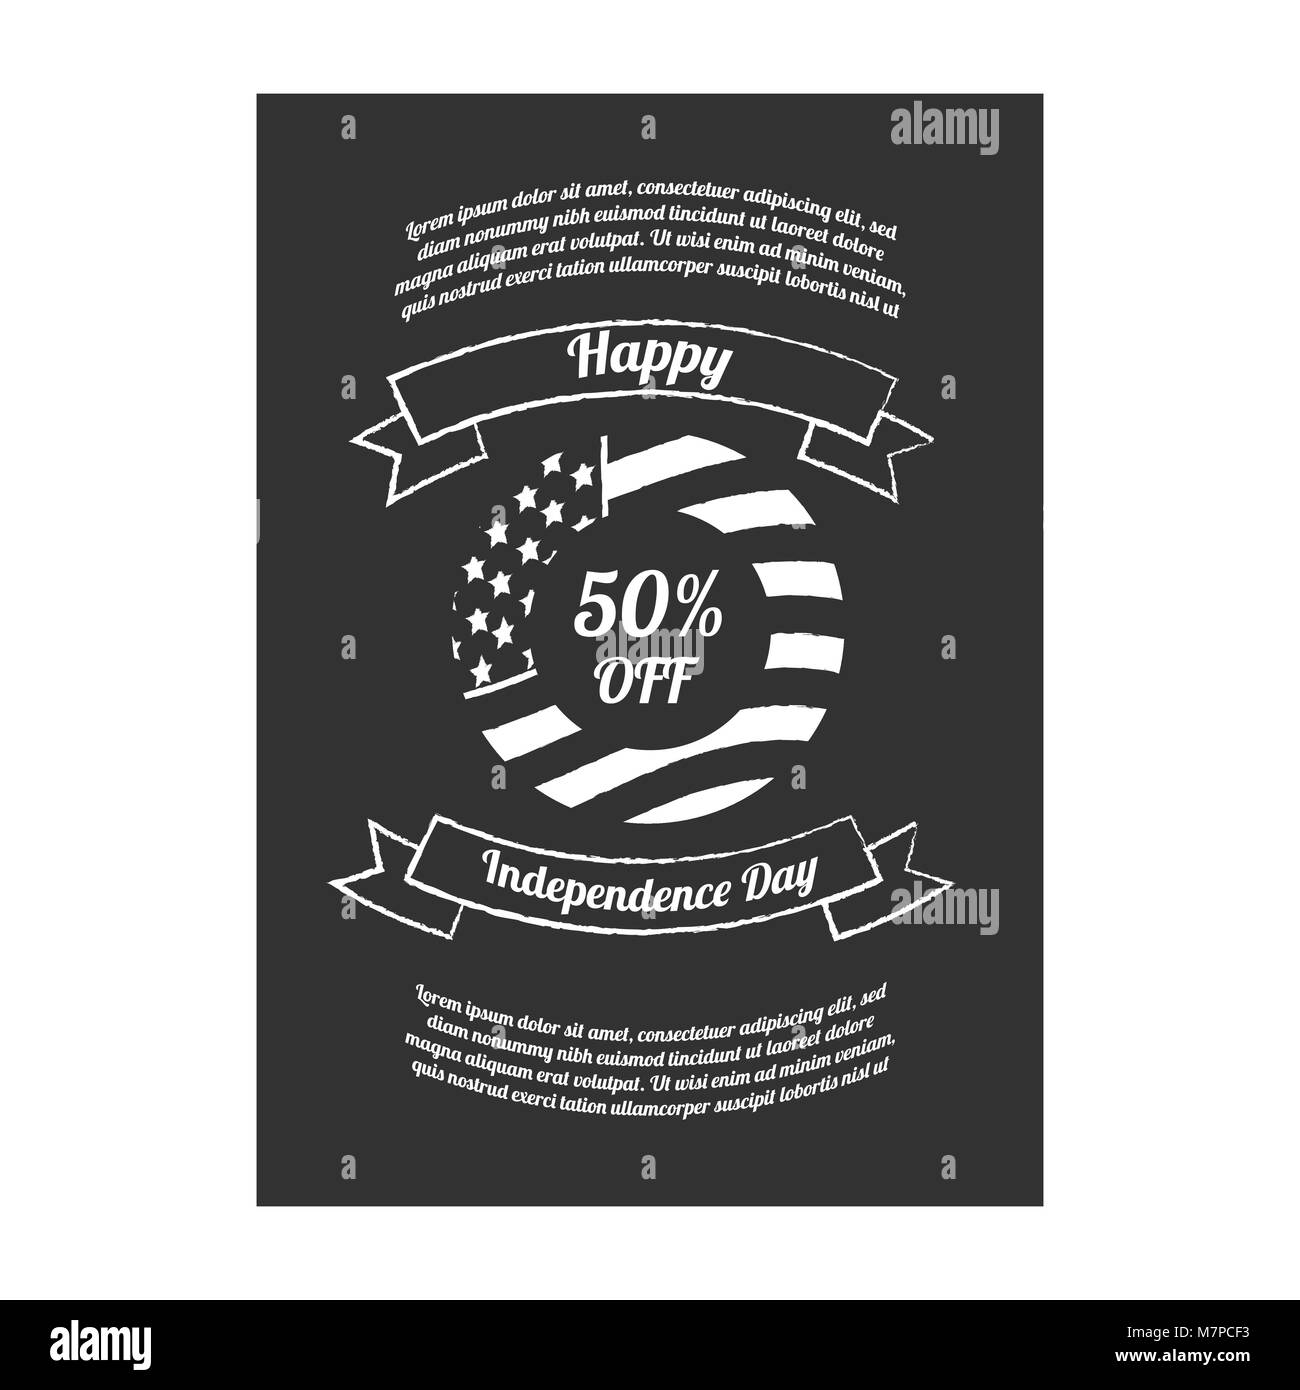 Happy Independence Banners Paper Craft Banners